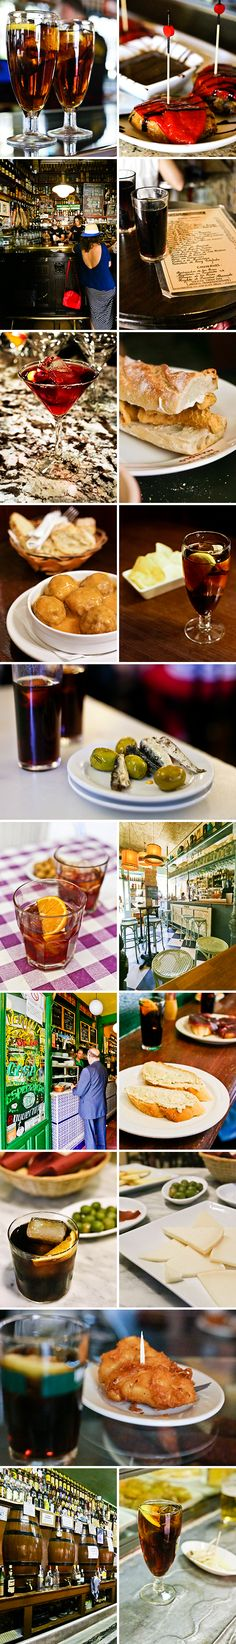 4 distinct routes for a self-led vermouth and tapas tours through some of our favorite neighborhoods in Madrid! Tapas, Madrid Restaurants, Madrid Travel, Spanish Cuisine, Best Places To Eat, Food Festival, Spain Travel, Street Food, Great Recipes